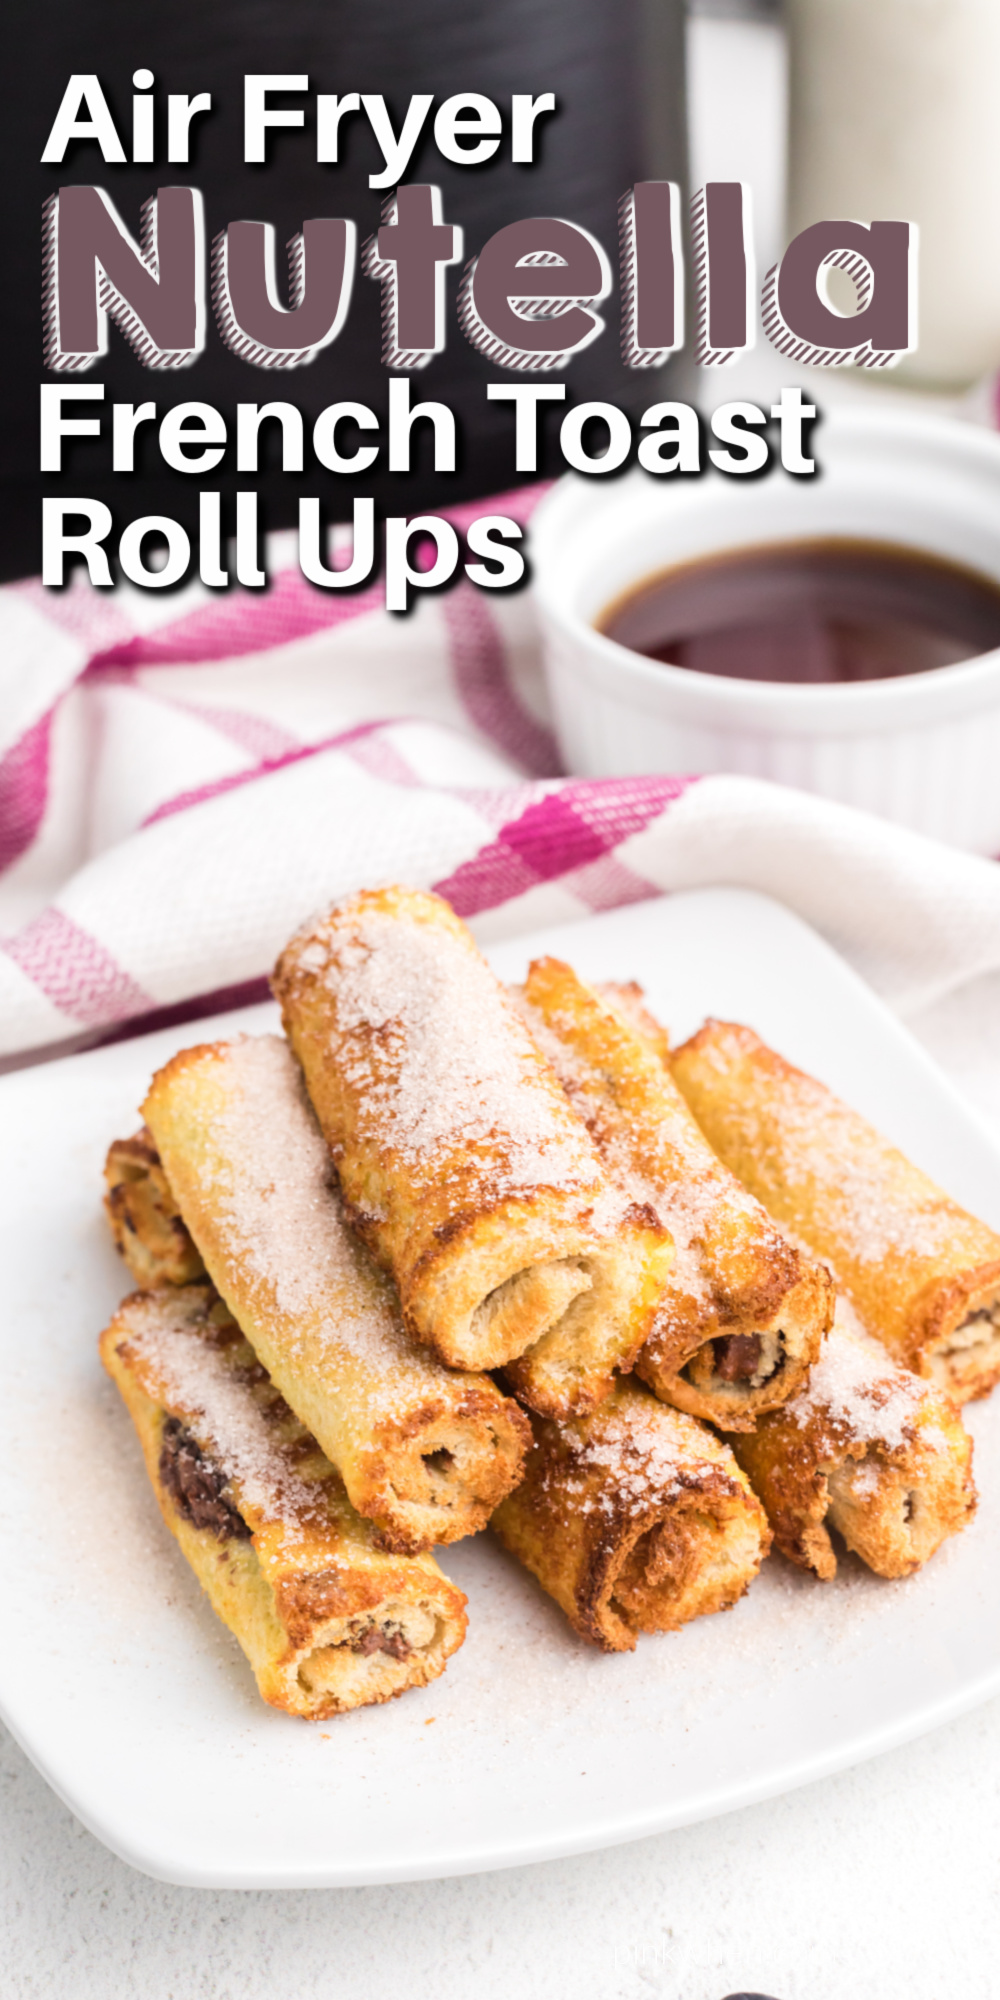 I love a good french toast recipe. There's just something about those golden brown slices of bread that the whole family loves. Air Fryer Nutella french toast roll-ups are one of my favorite breakfast recipes. Made with just 6 ingredients and done in less than 10 minutes!